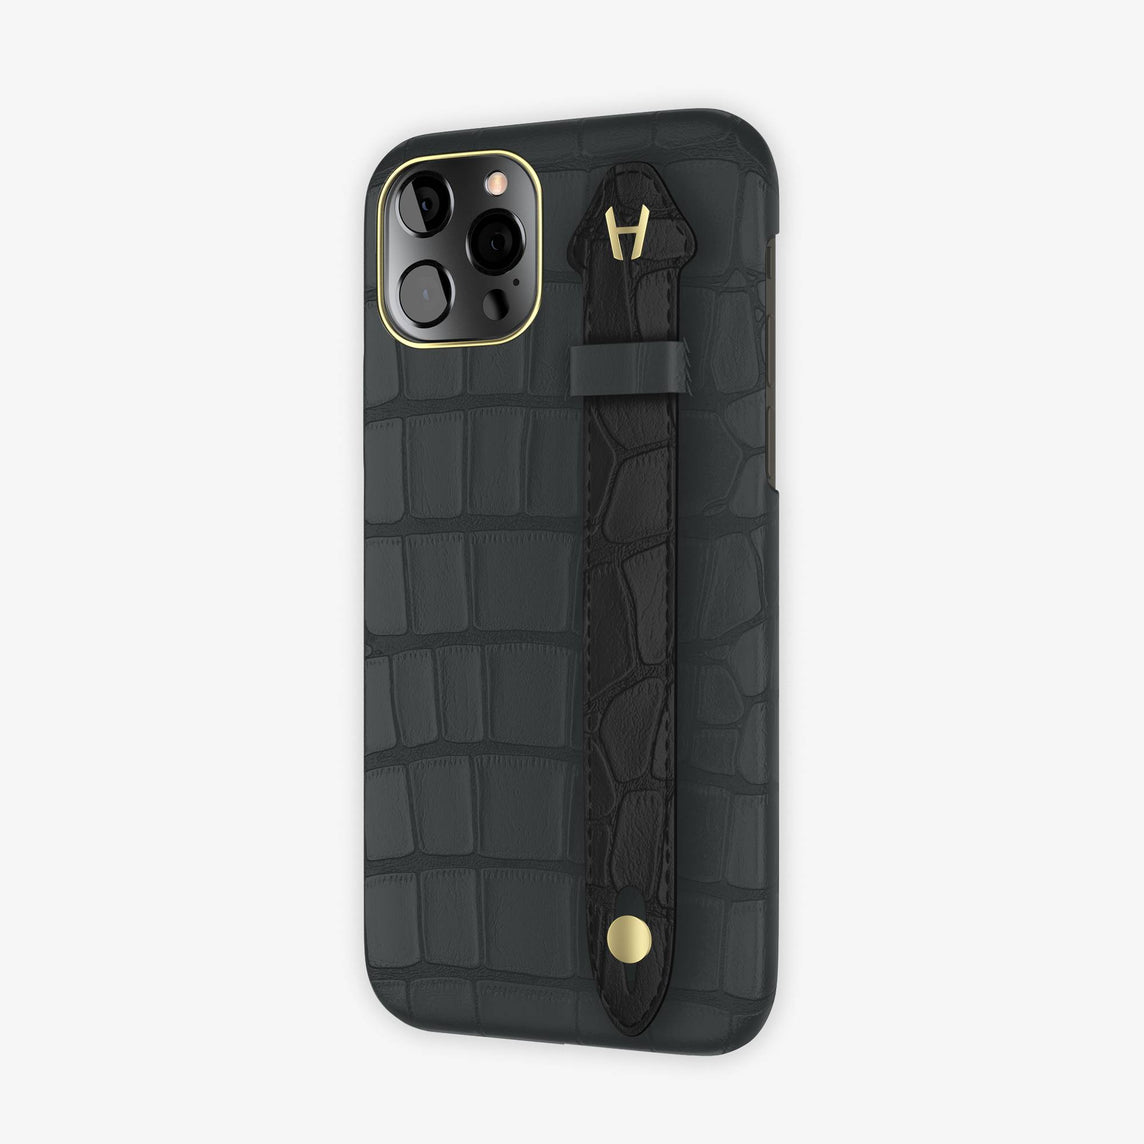 Alligator Side Finger Case iPhone 12 Pro | Anthracite/Black -Yellow Gold